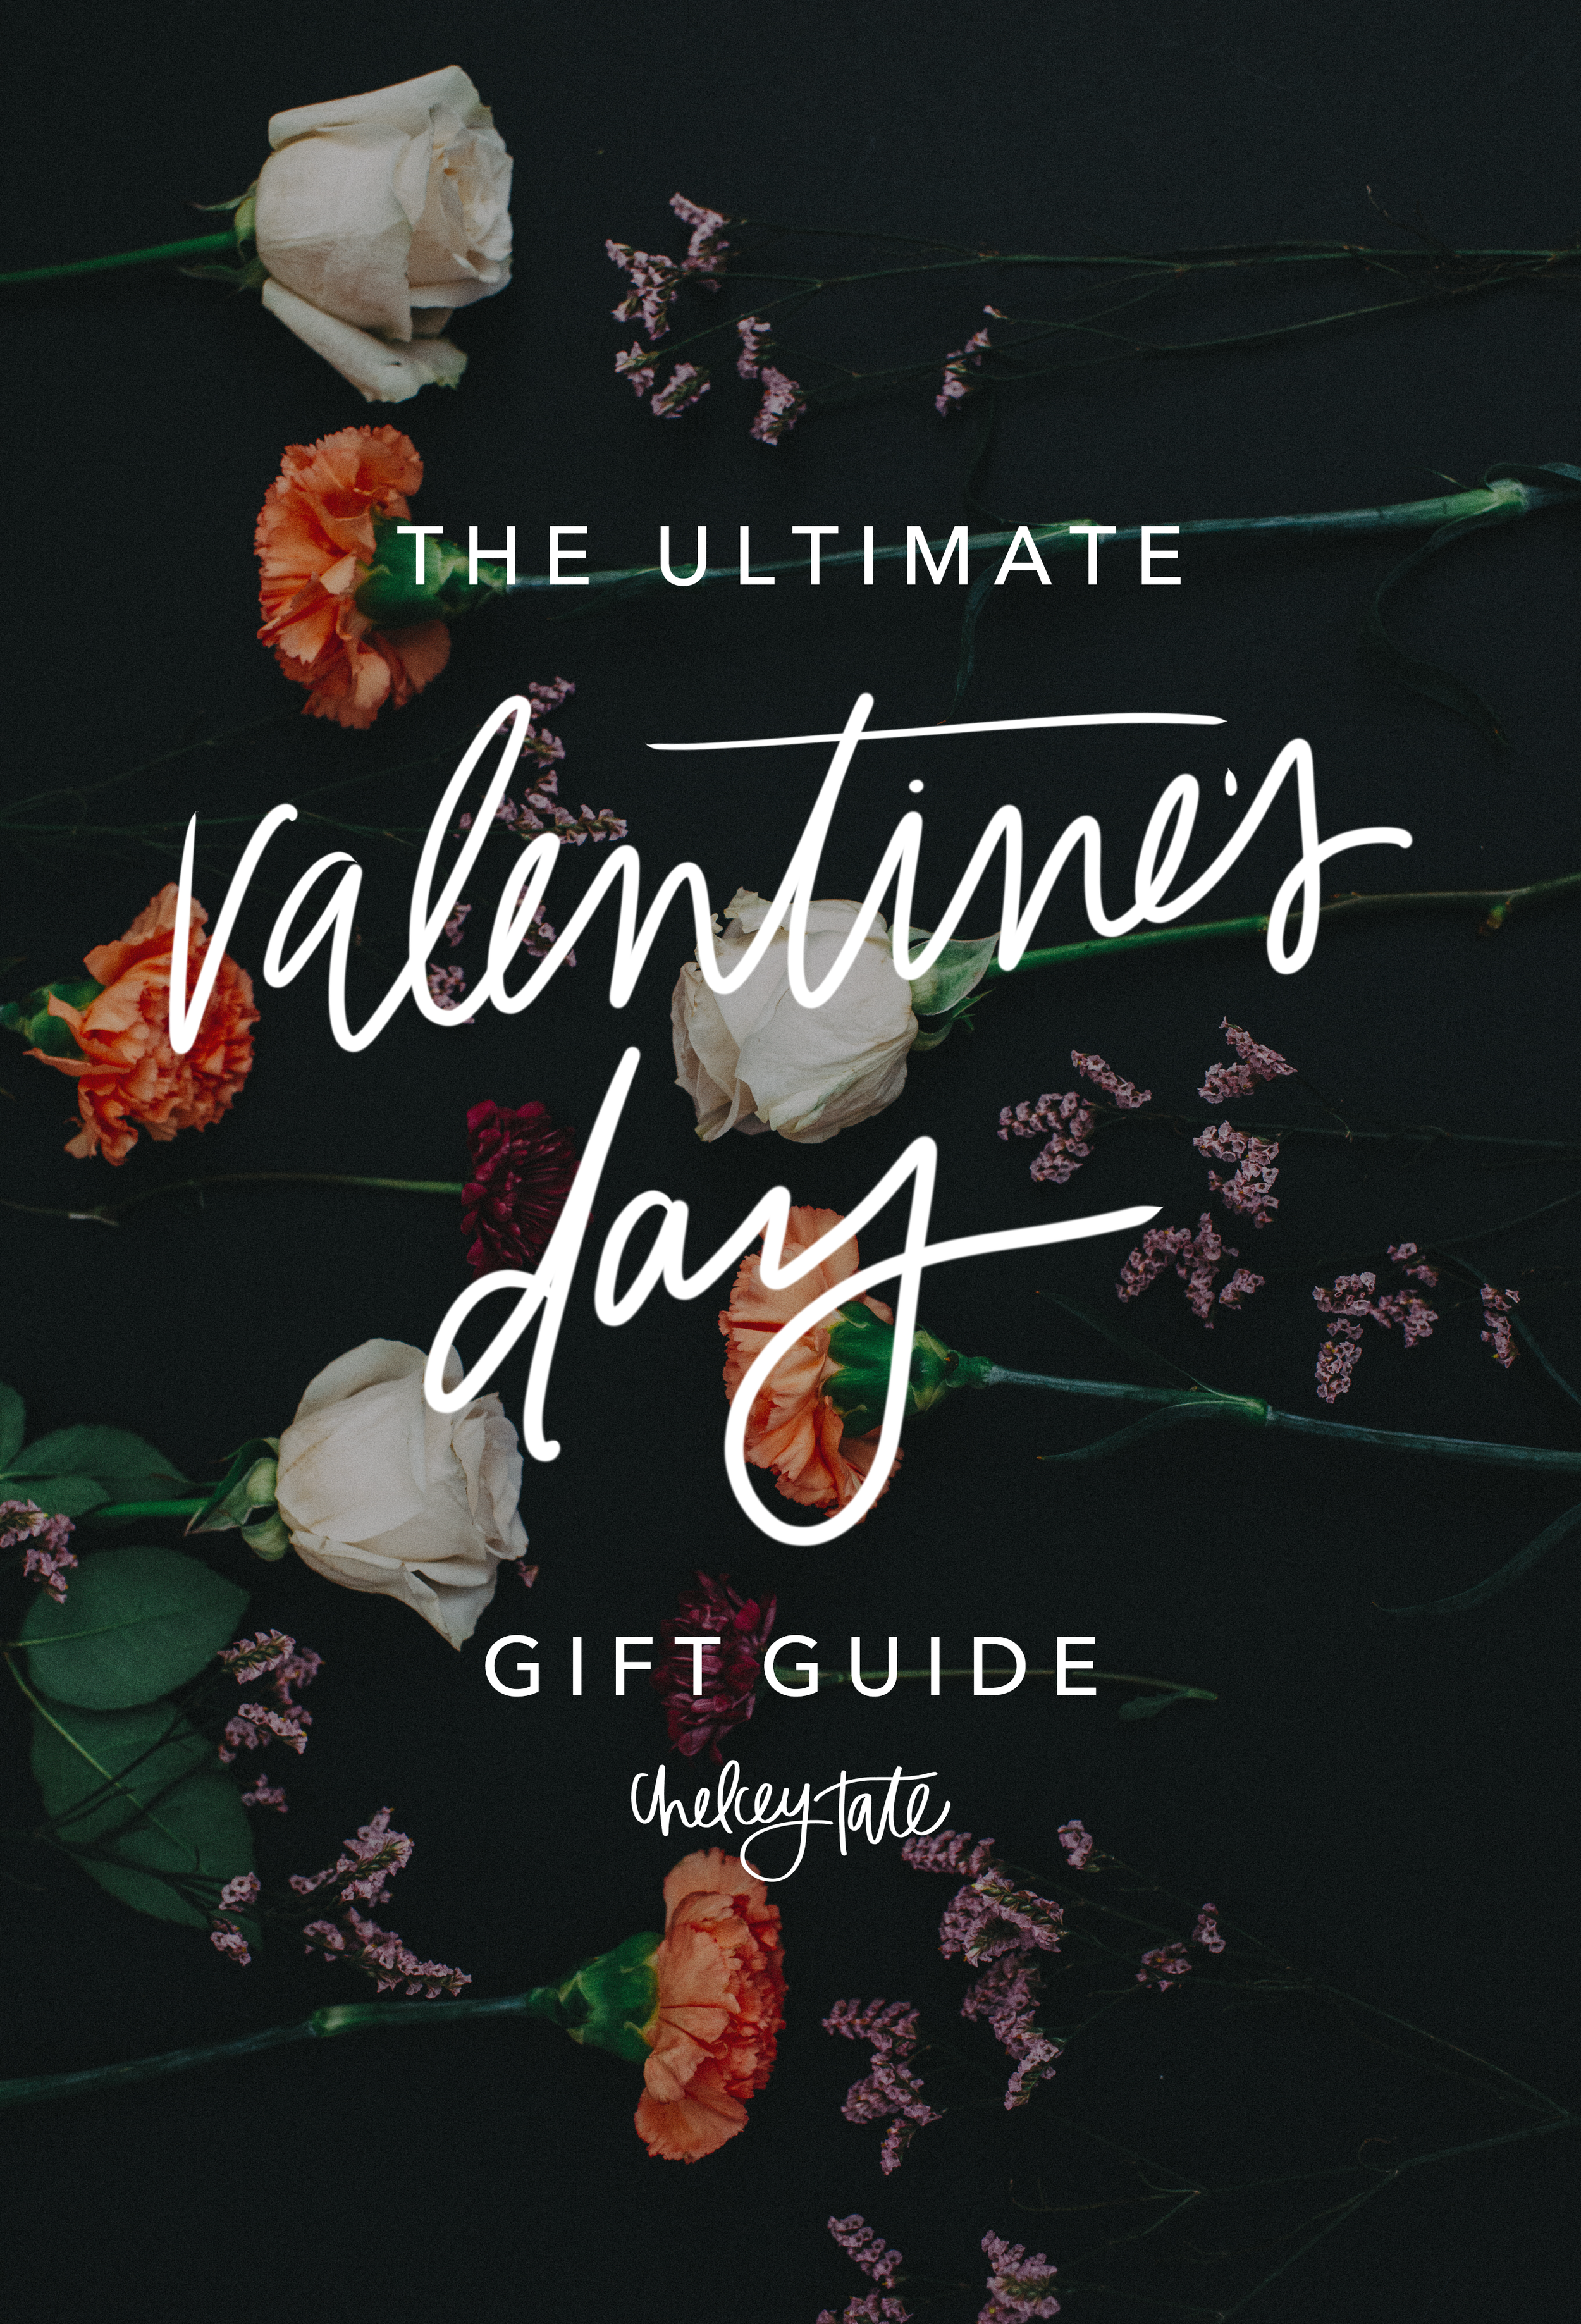 The Ultimate Valentine's Day Gift Guide via chelceytate.com